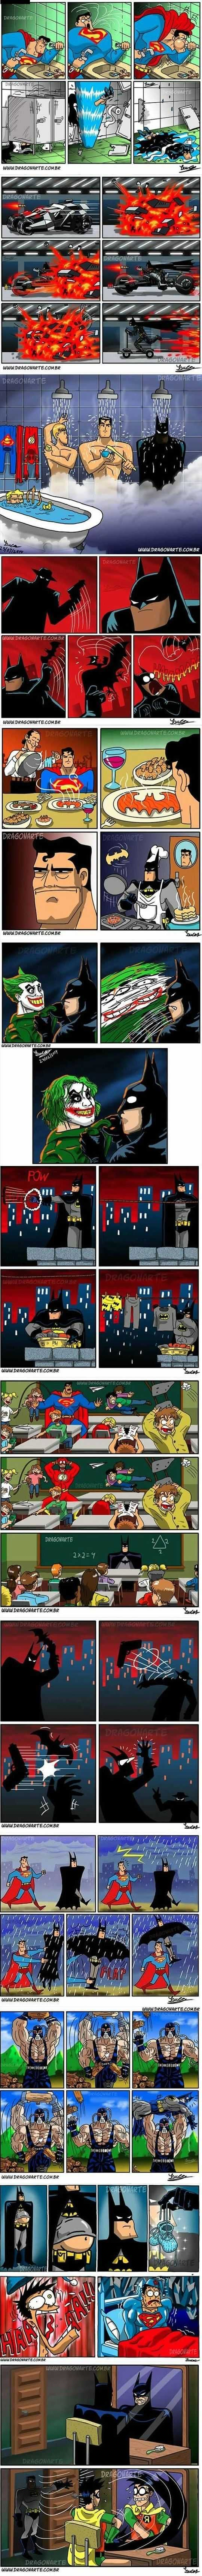 Some of the funniest Dragonartes Batman comics - Imgur